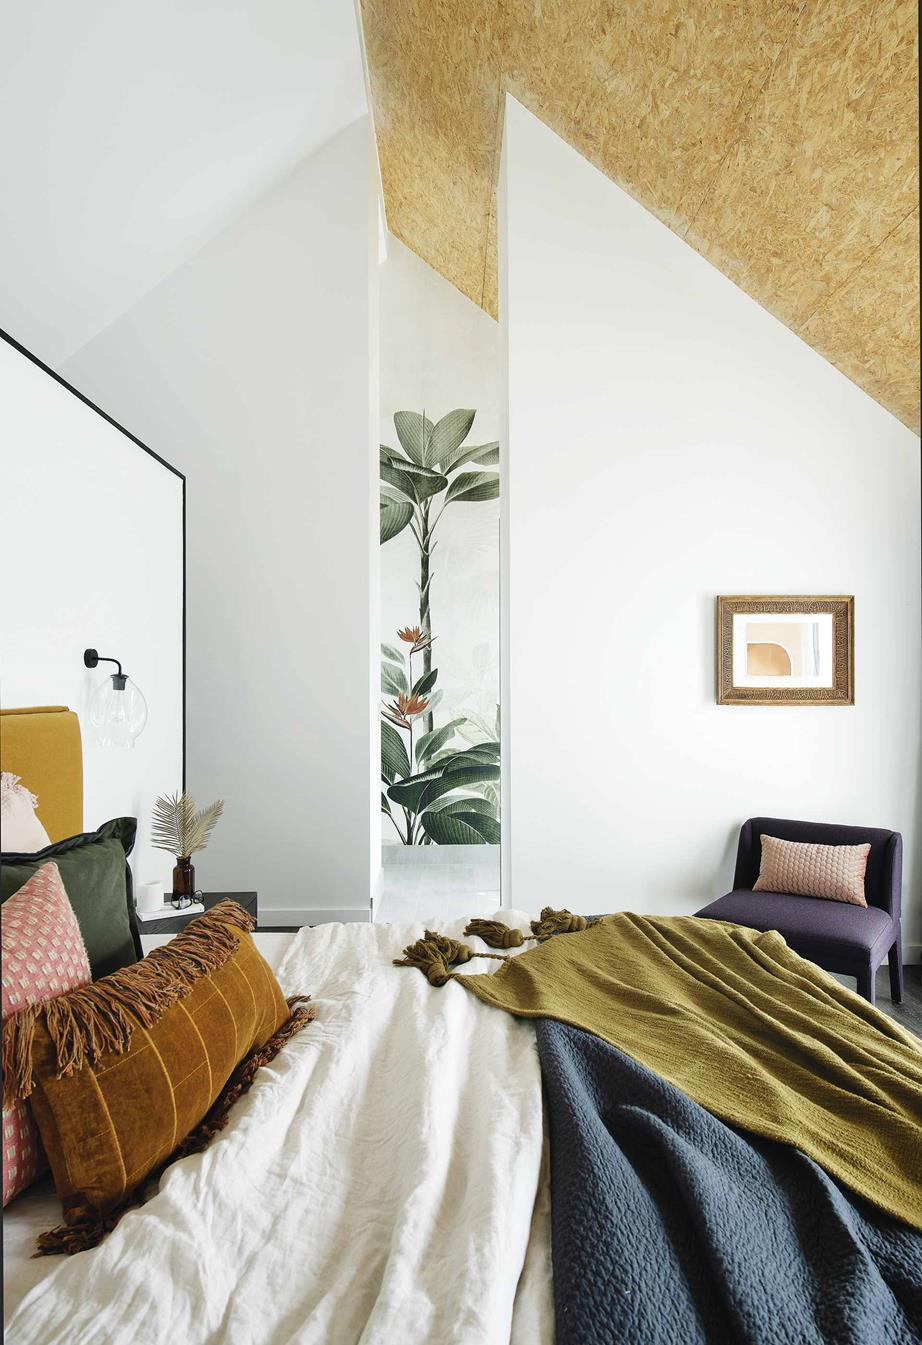 Master bedroom  Cushions from  Asbury Park Agency ,  Adairs ,  HK Living  and  Freedom , and Adairs bedlinen and throws, enliven the all-white palette. A Søktas sconce casts light at night and is mounted on the reverse of the walk-in robe behind the bed.